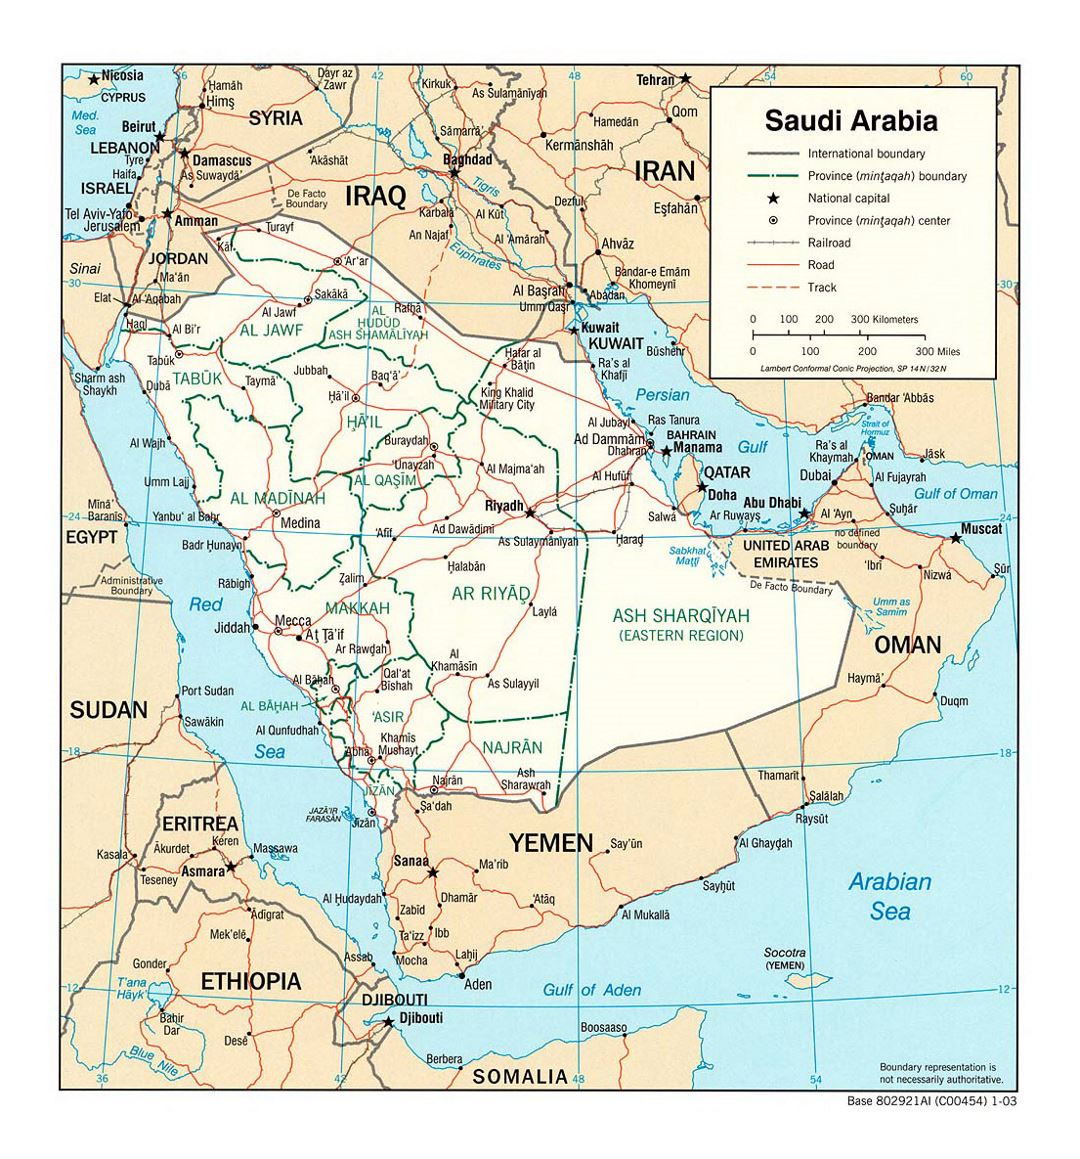 Detailed political and administrative map of Saudi Arabia with roads, railroads and major cities - 2003